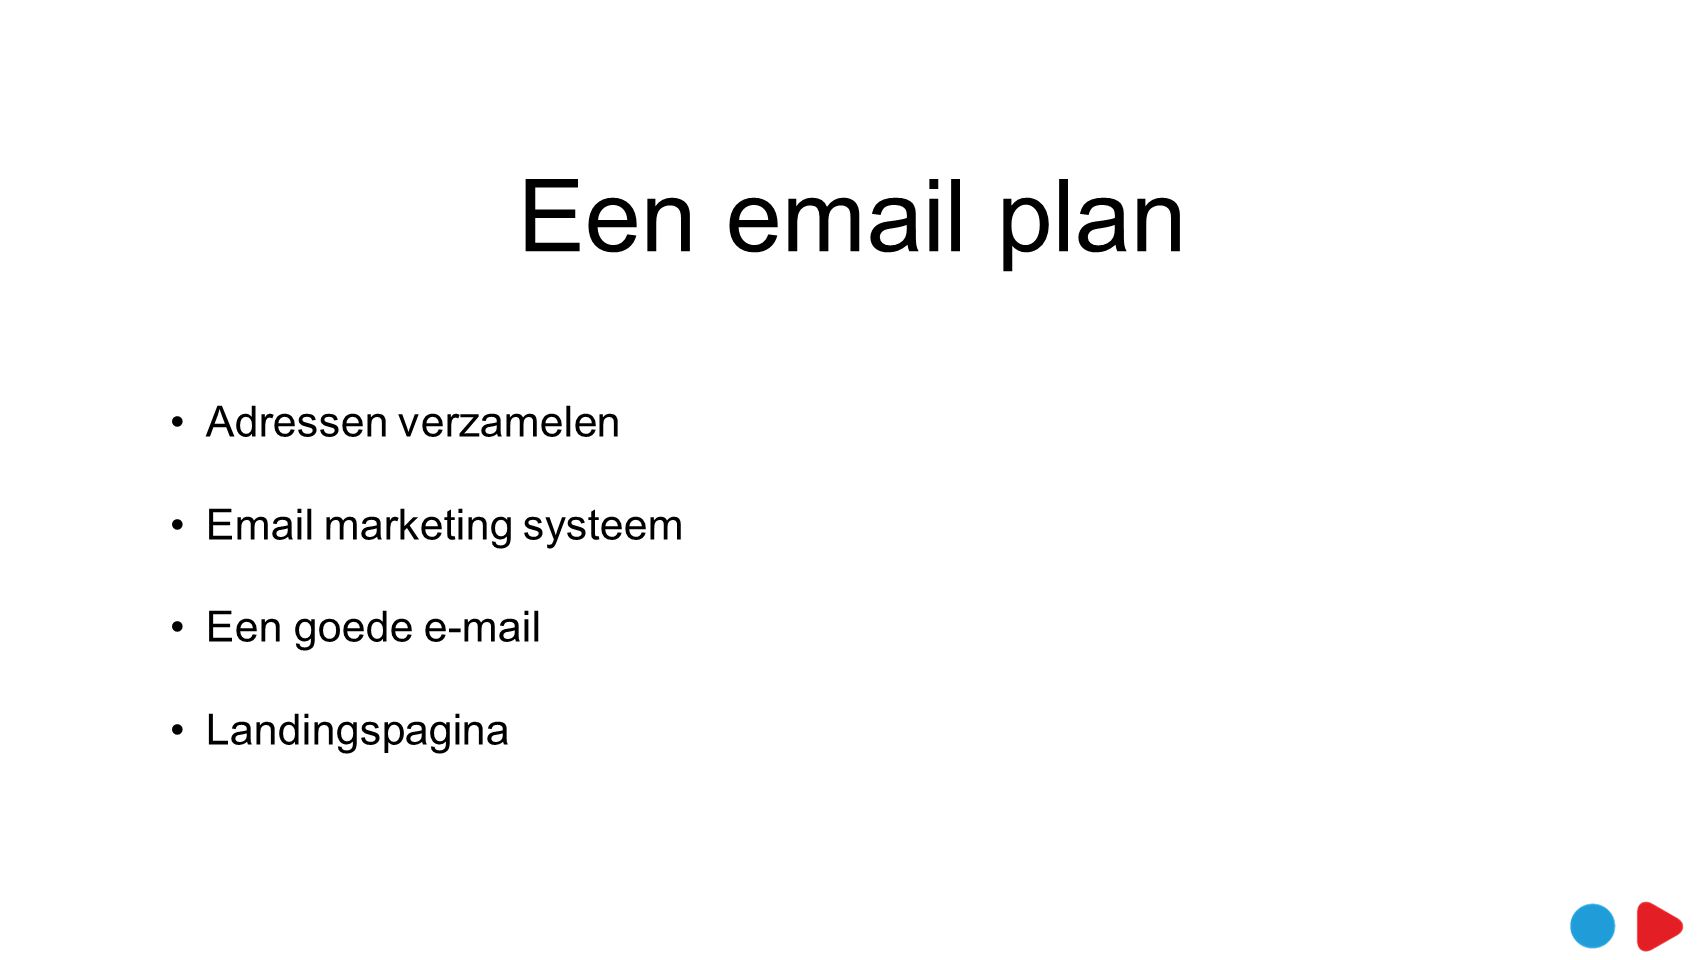 Een email plan Adressen verzamelen Email marketing systeem